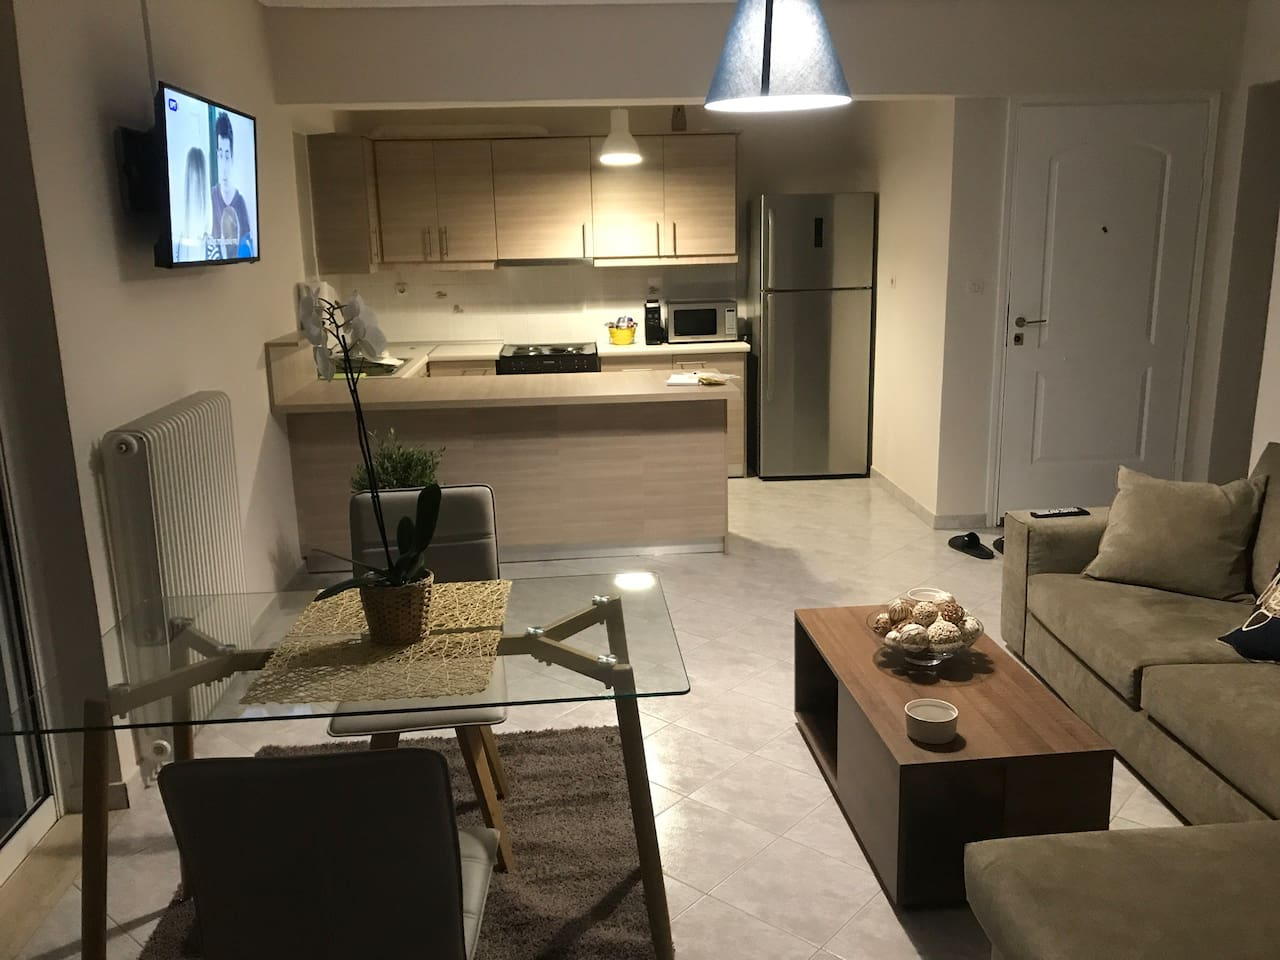 Living Room, Dining Table & Kitchen